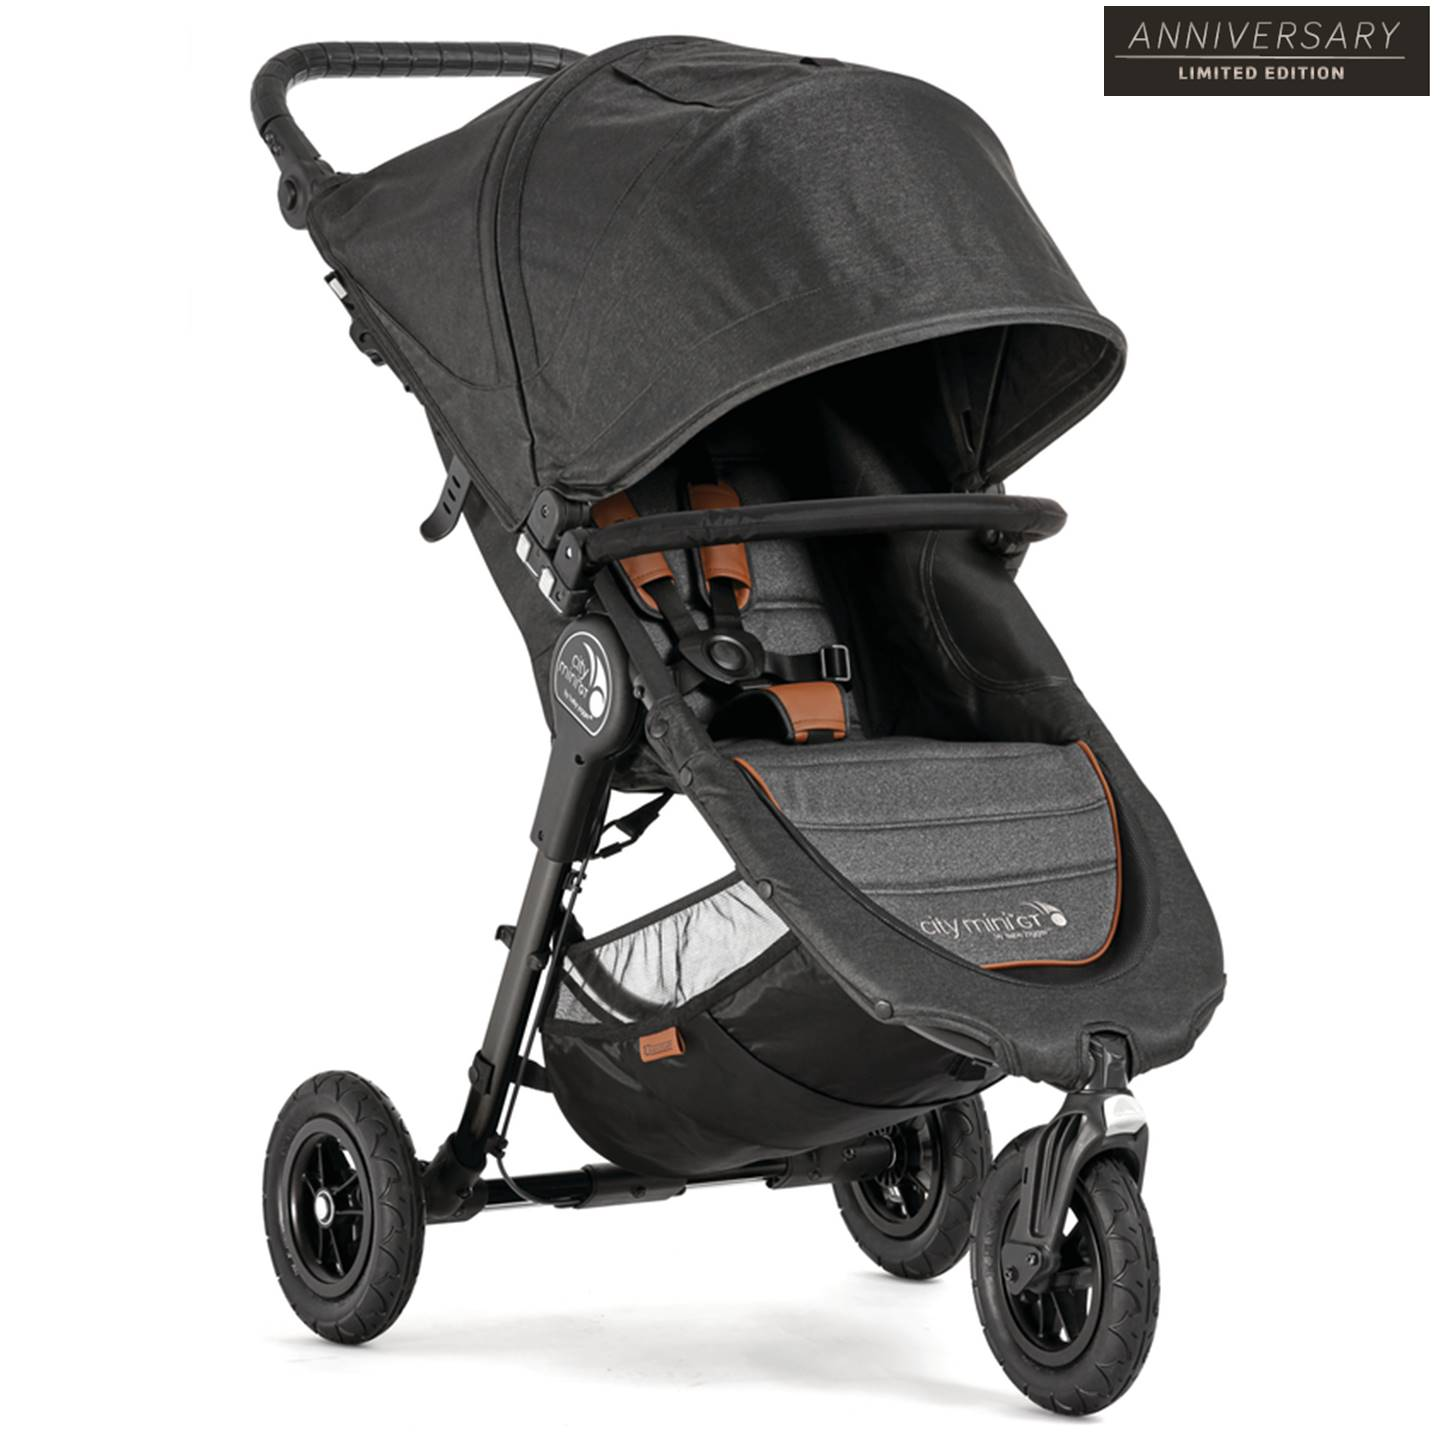 BJ420205032100 Baby Jogger City Mini Special Edition (1)